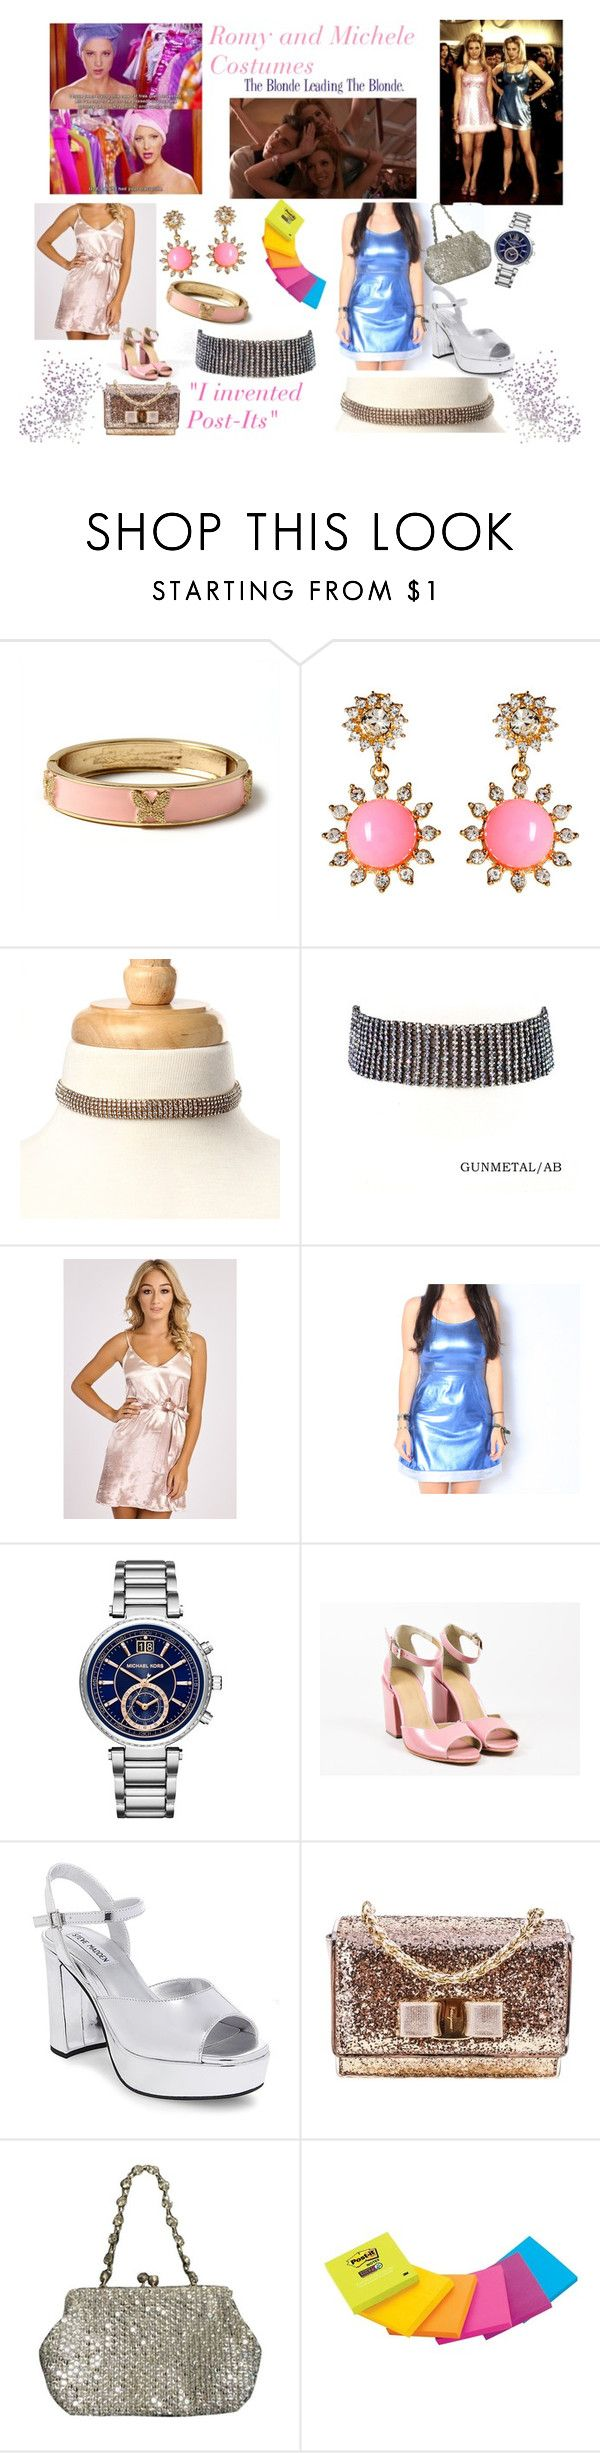 """""""Romy and Michele Costume"""" by amritasinghjewelry on Polyvore featuring Amrita Singh, Michael Kors, Salvatore Ferragamo and Valentino"""